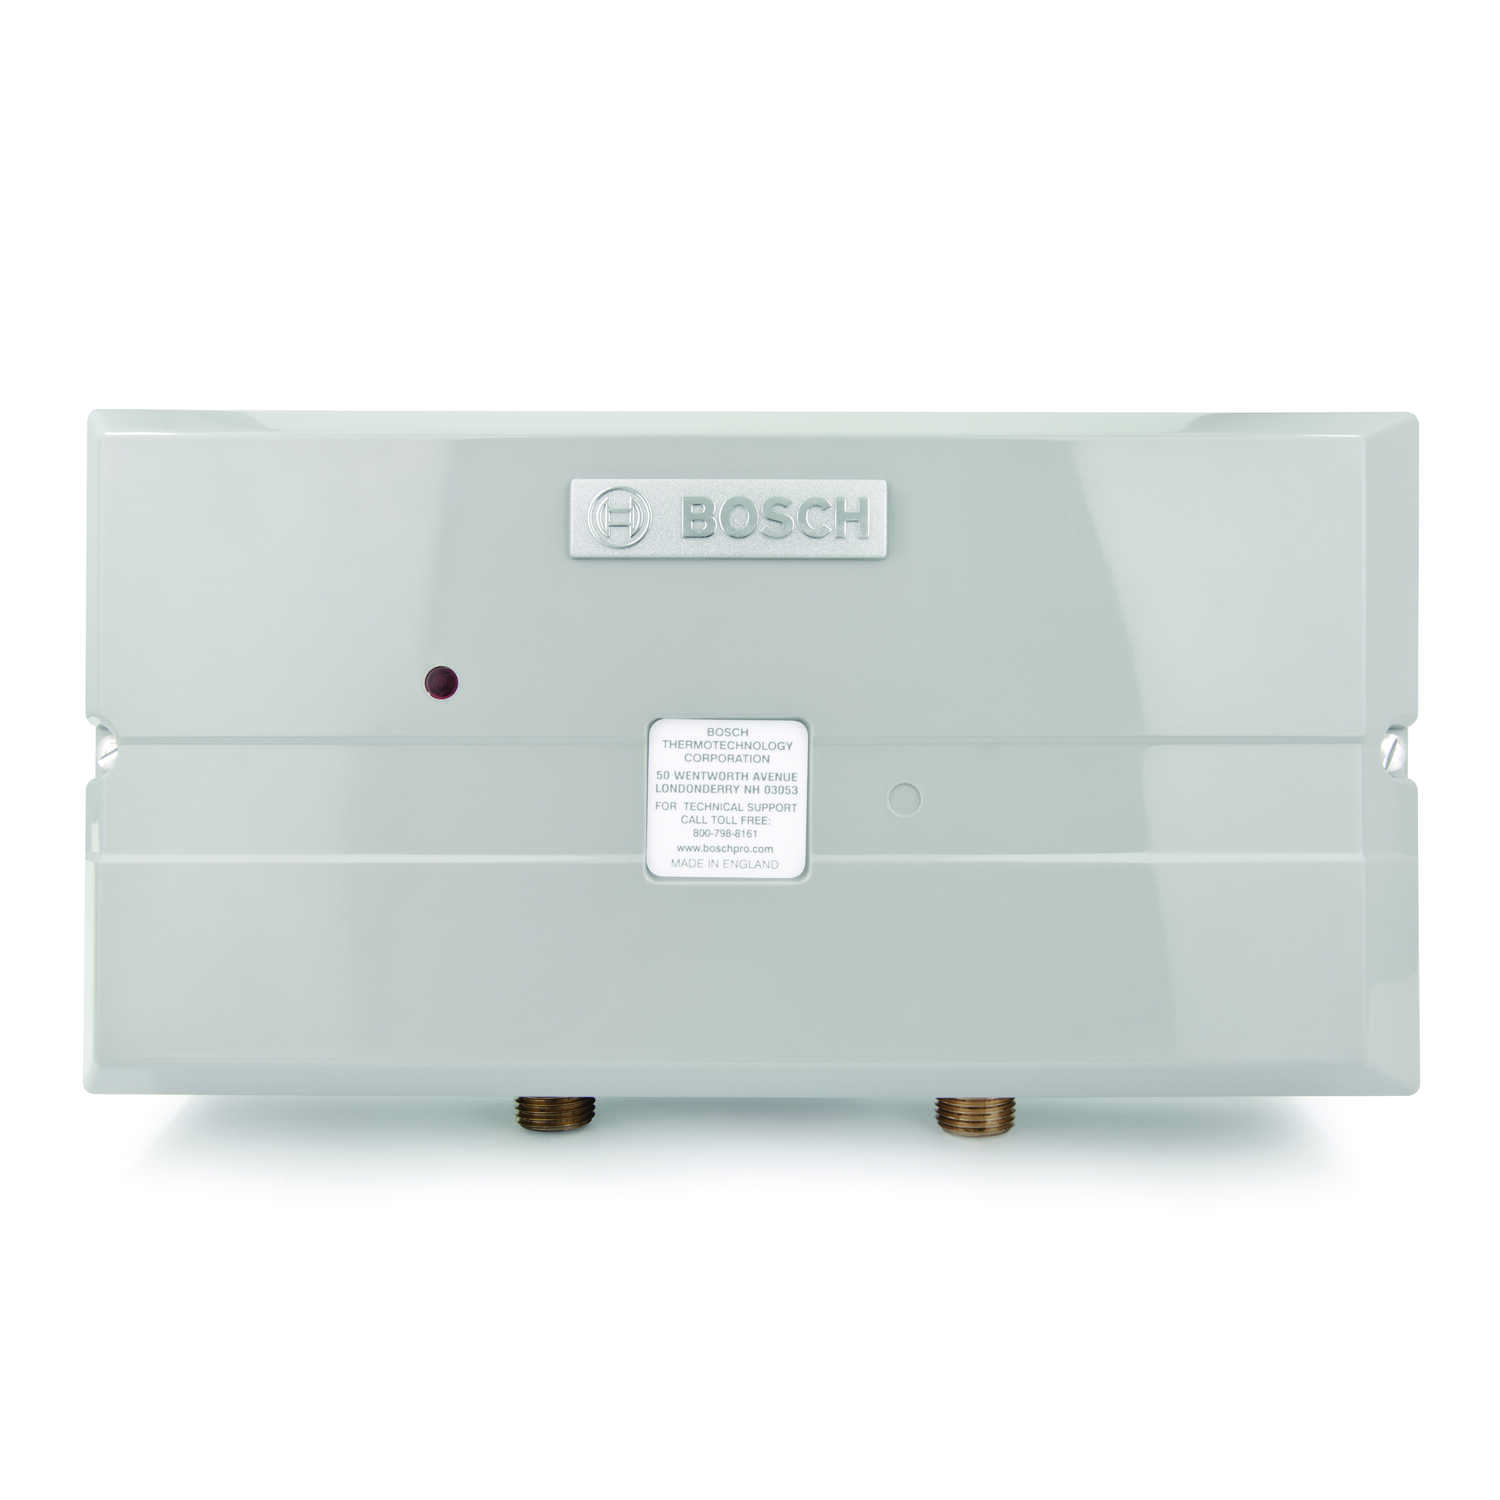 Bosch  Tronic  Electric  Tankless Water Heater